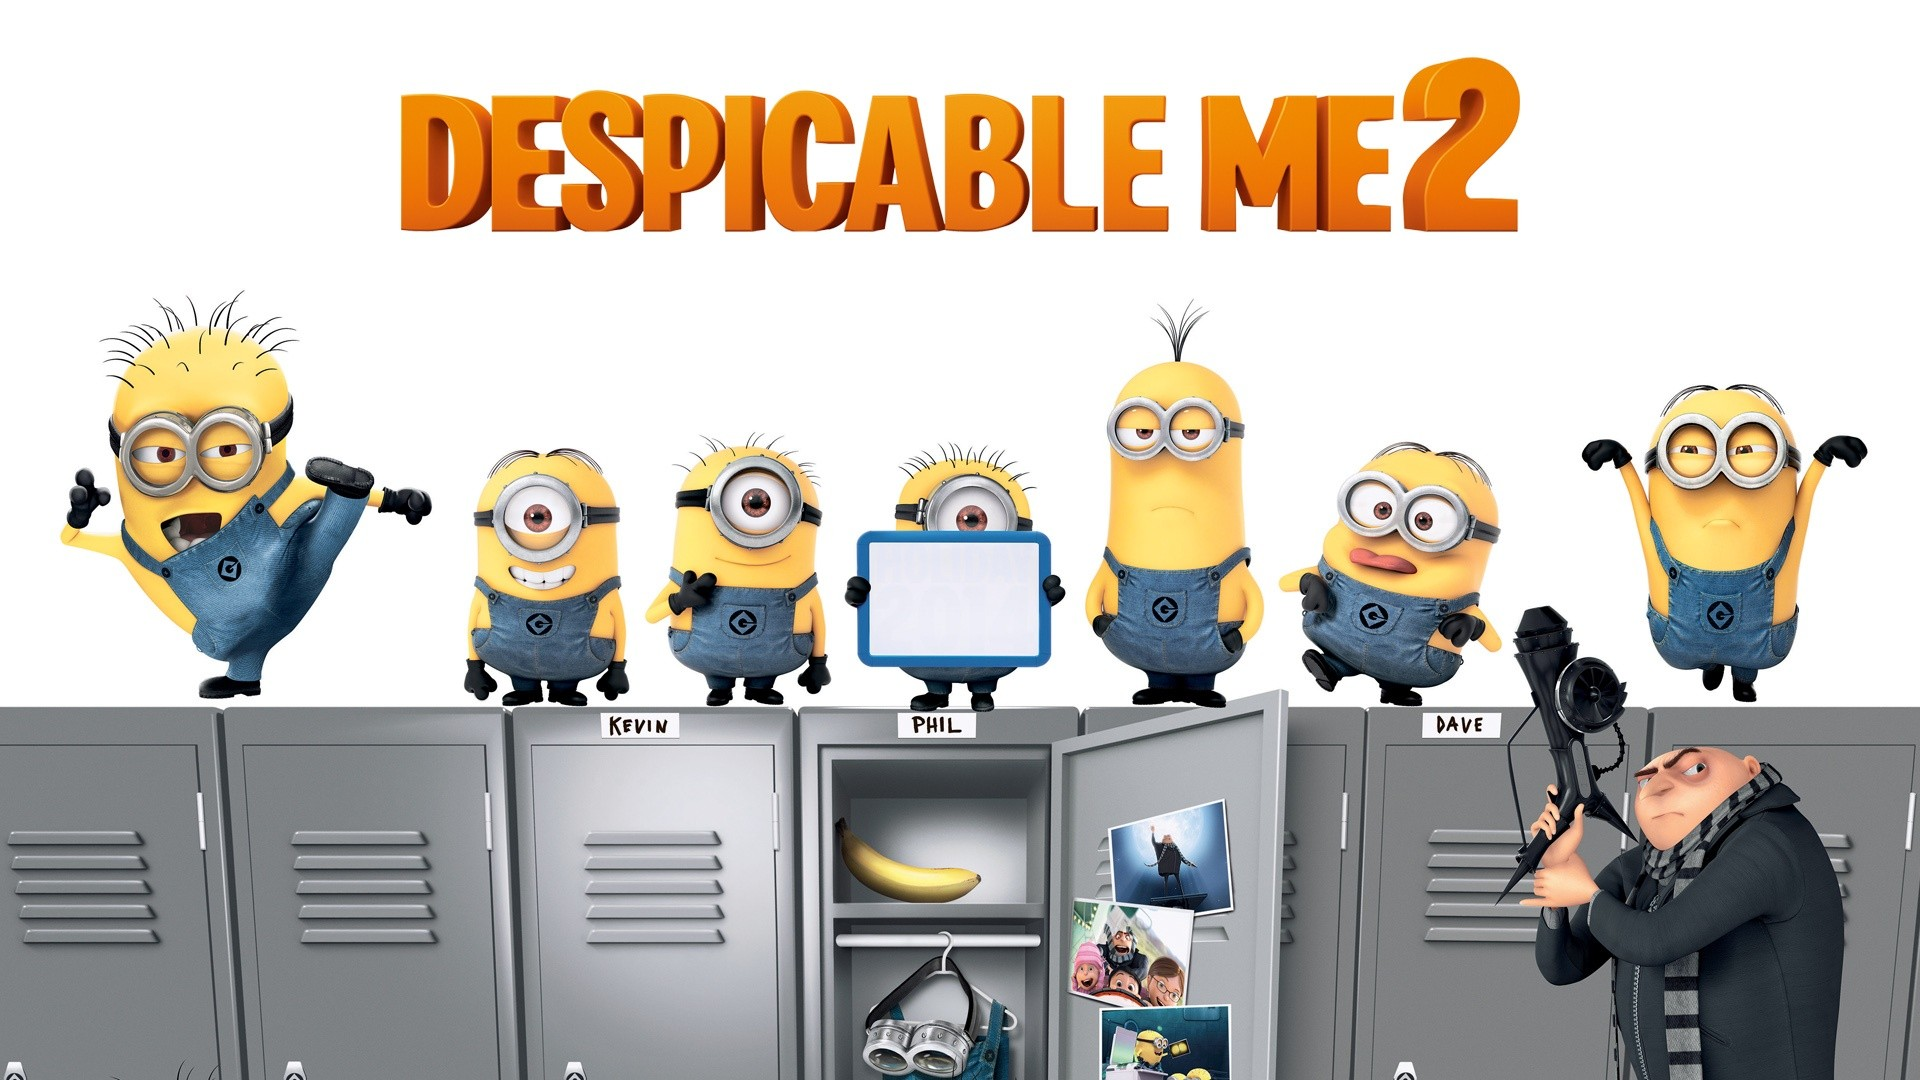 Despicable Me 2 Full HD Wallpaper 1920x1080